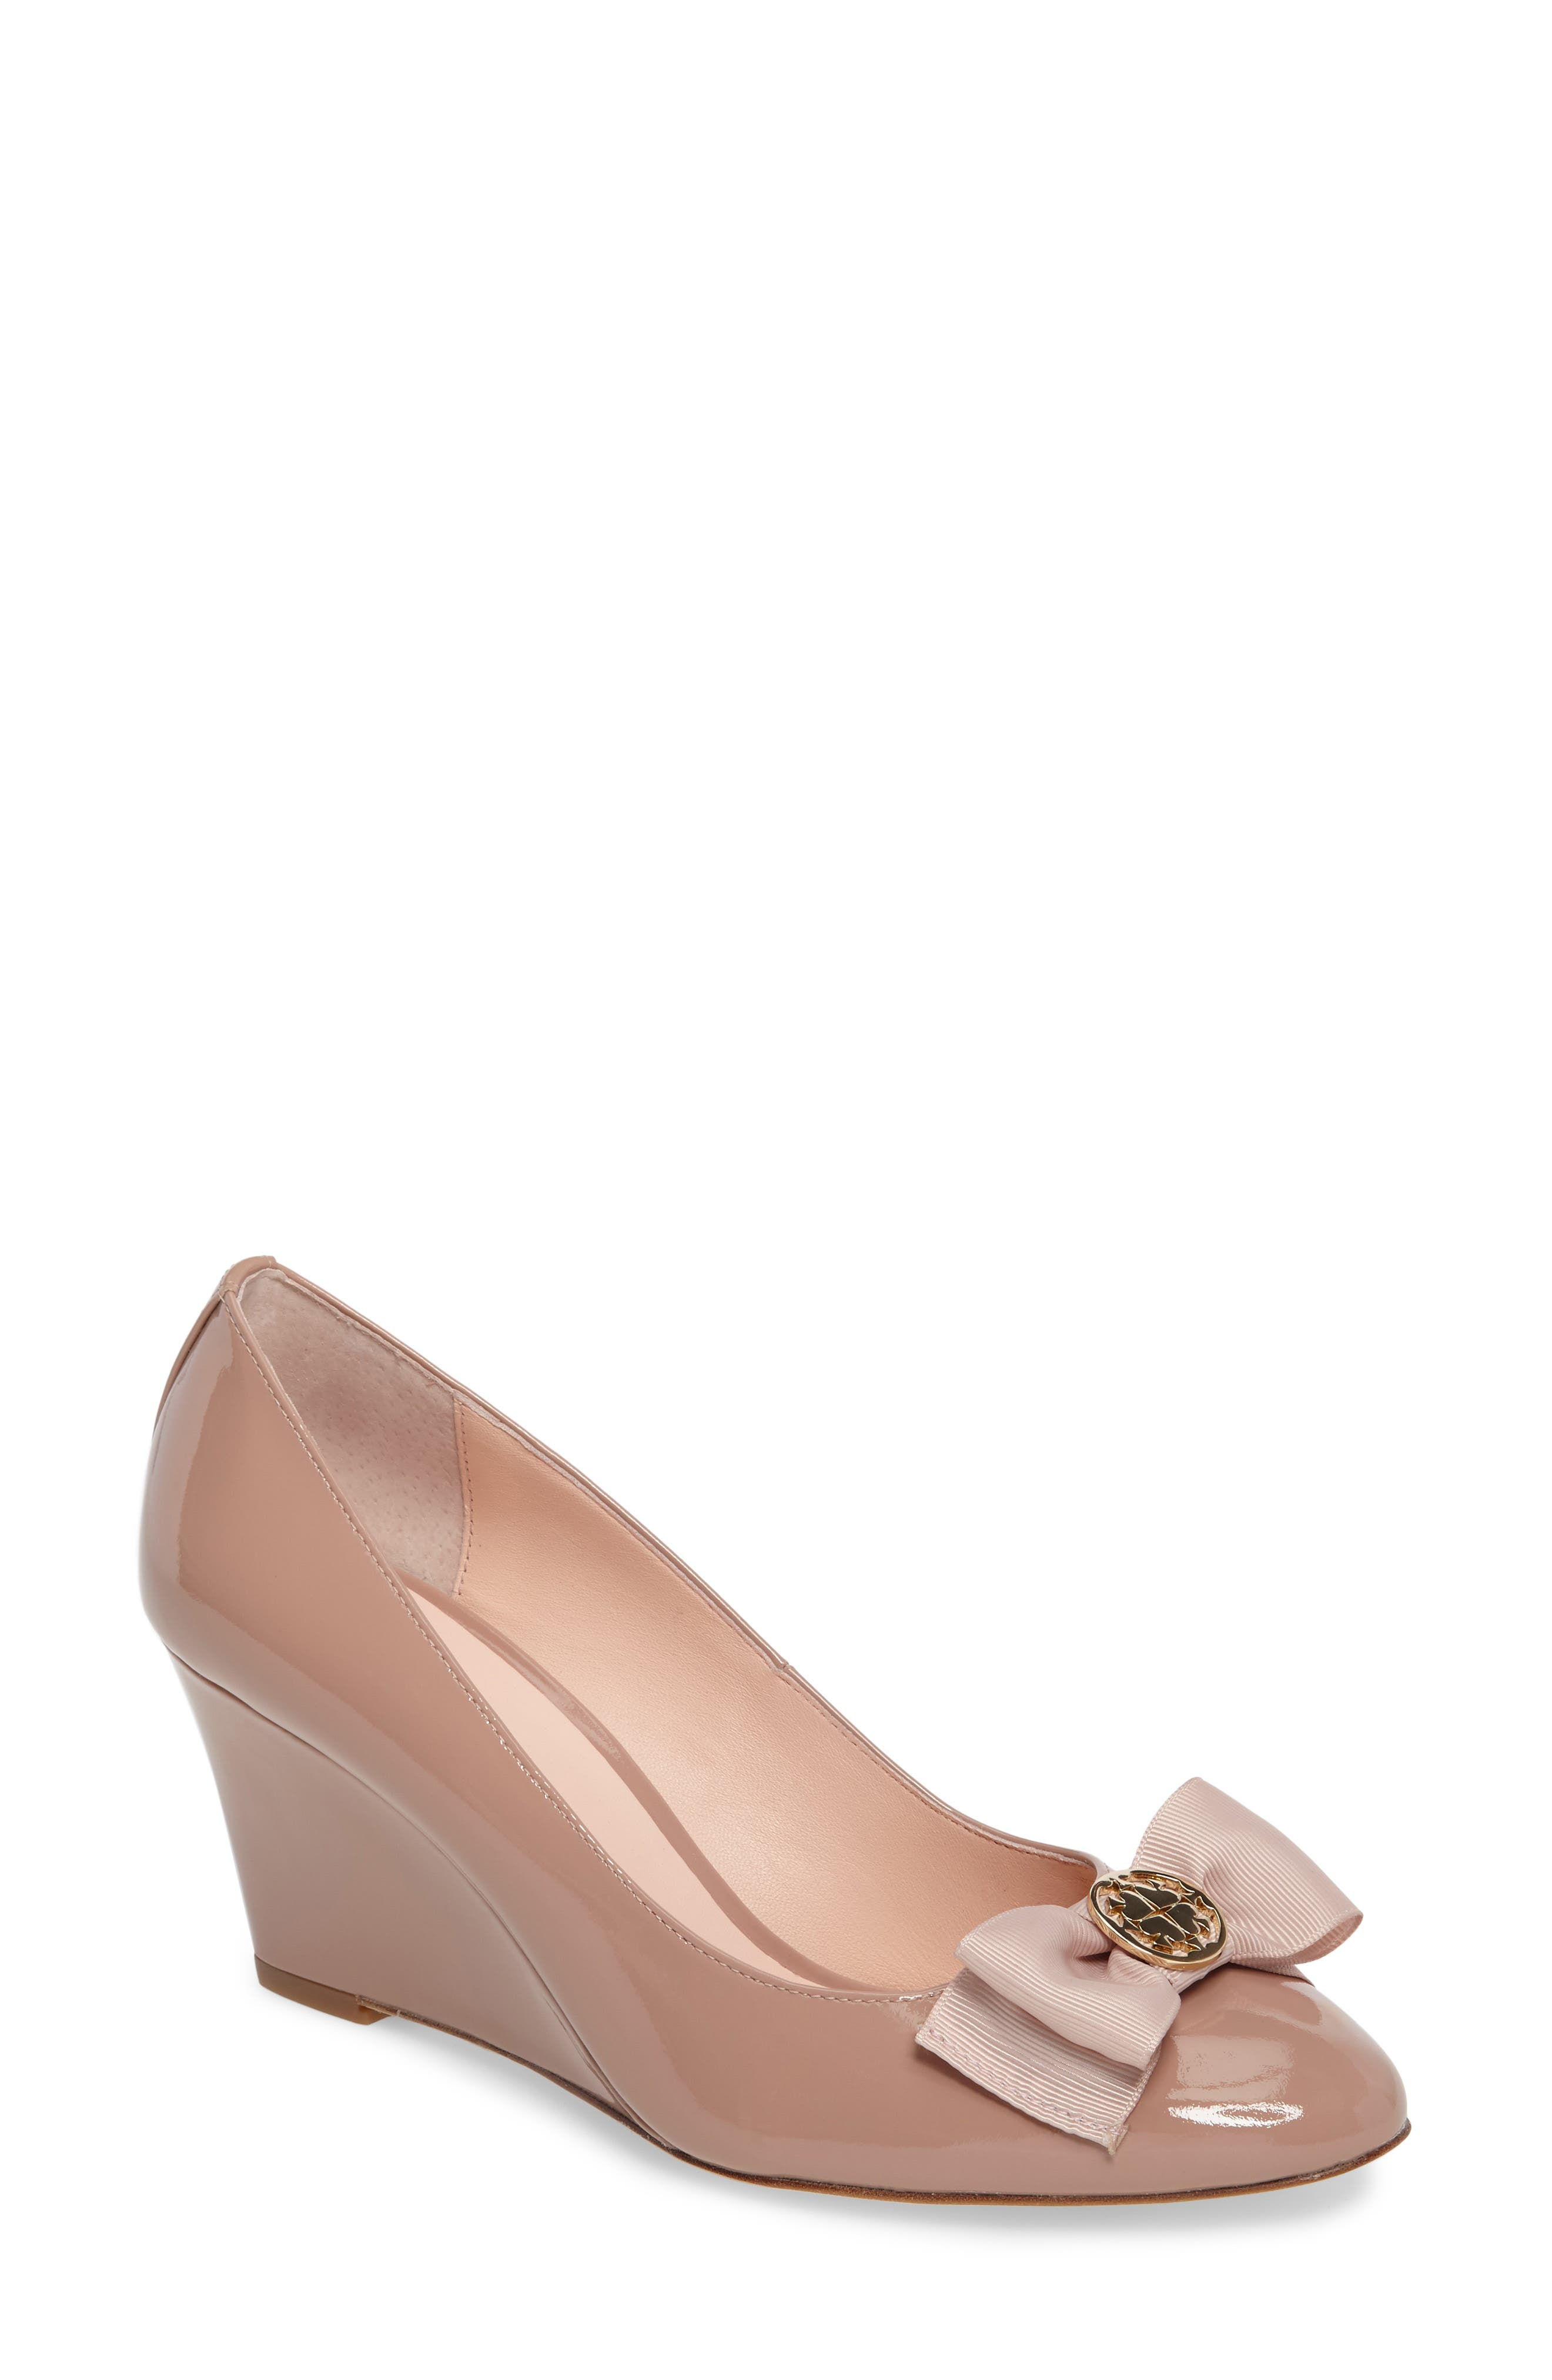 kate spade new york wescott wedge pump (Women)